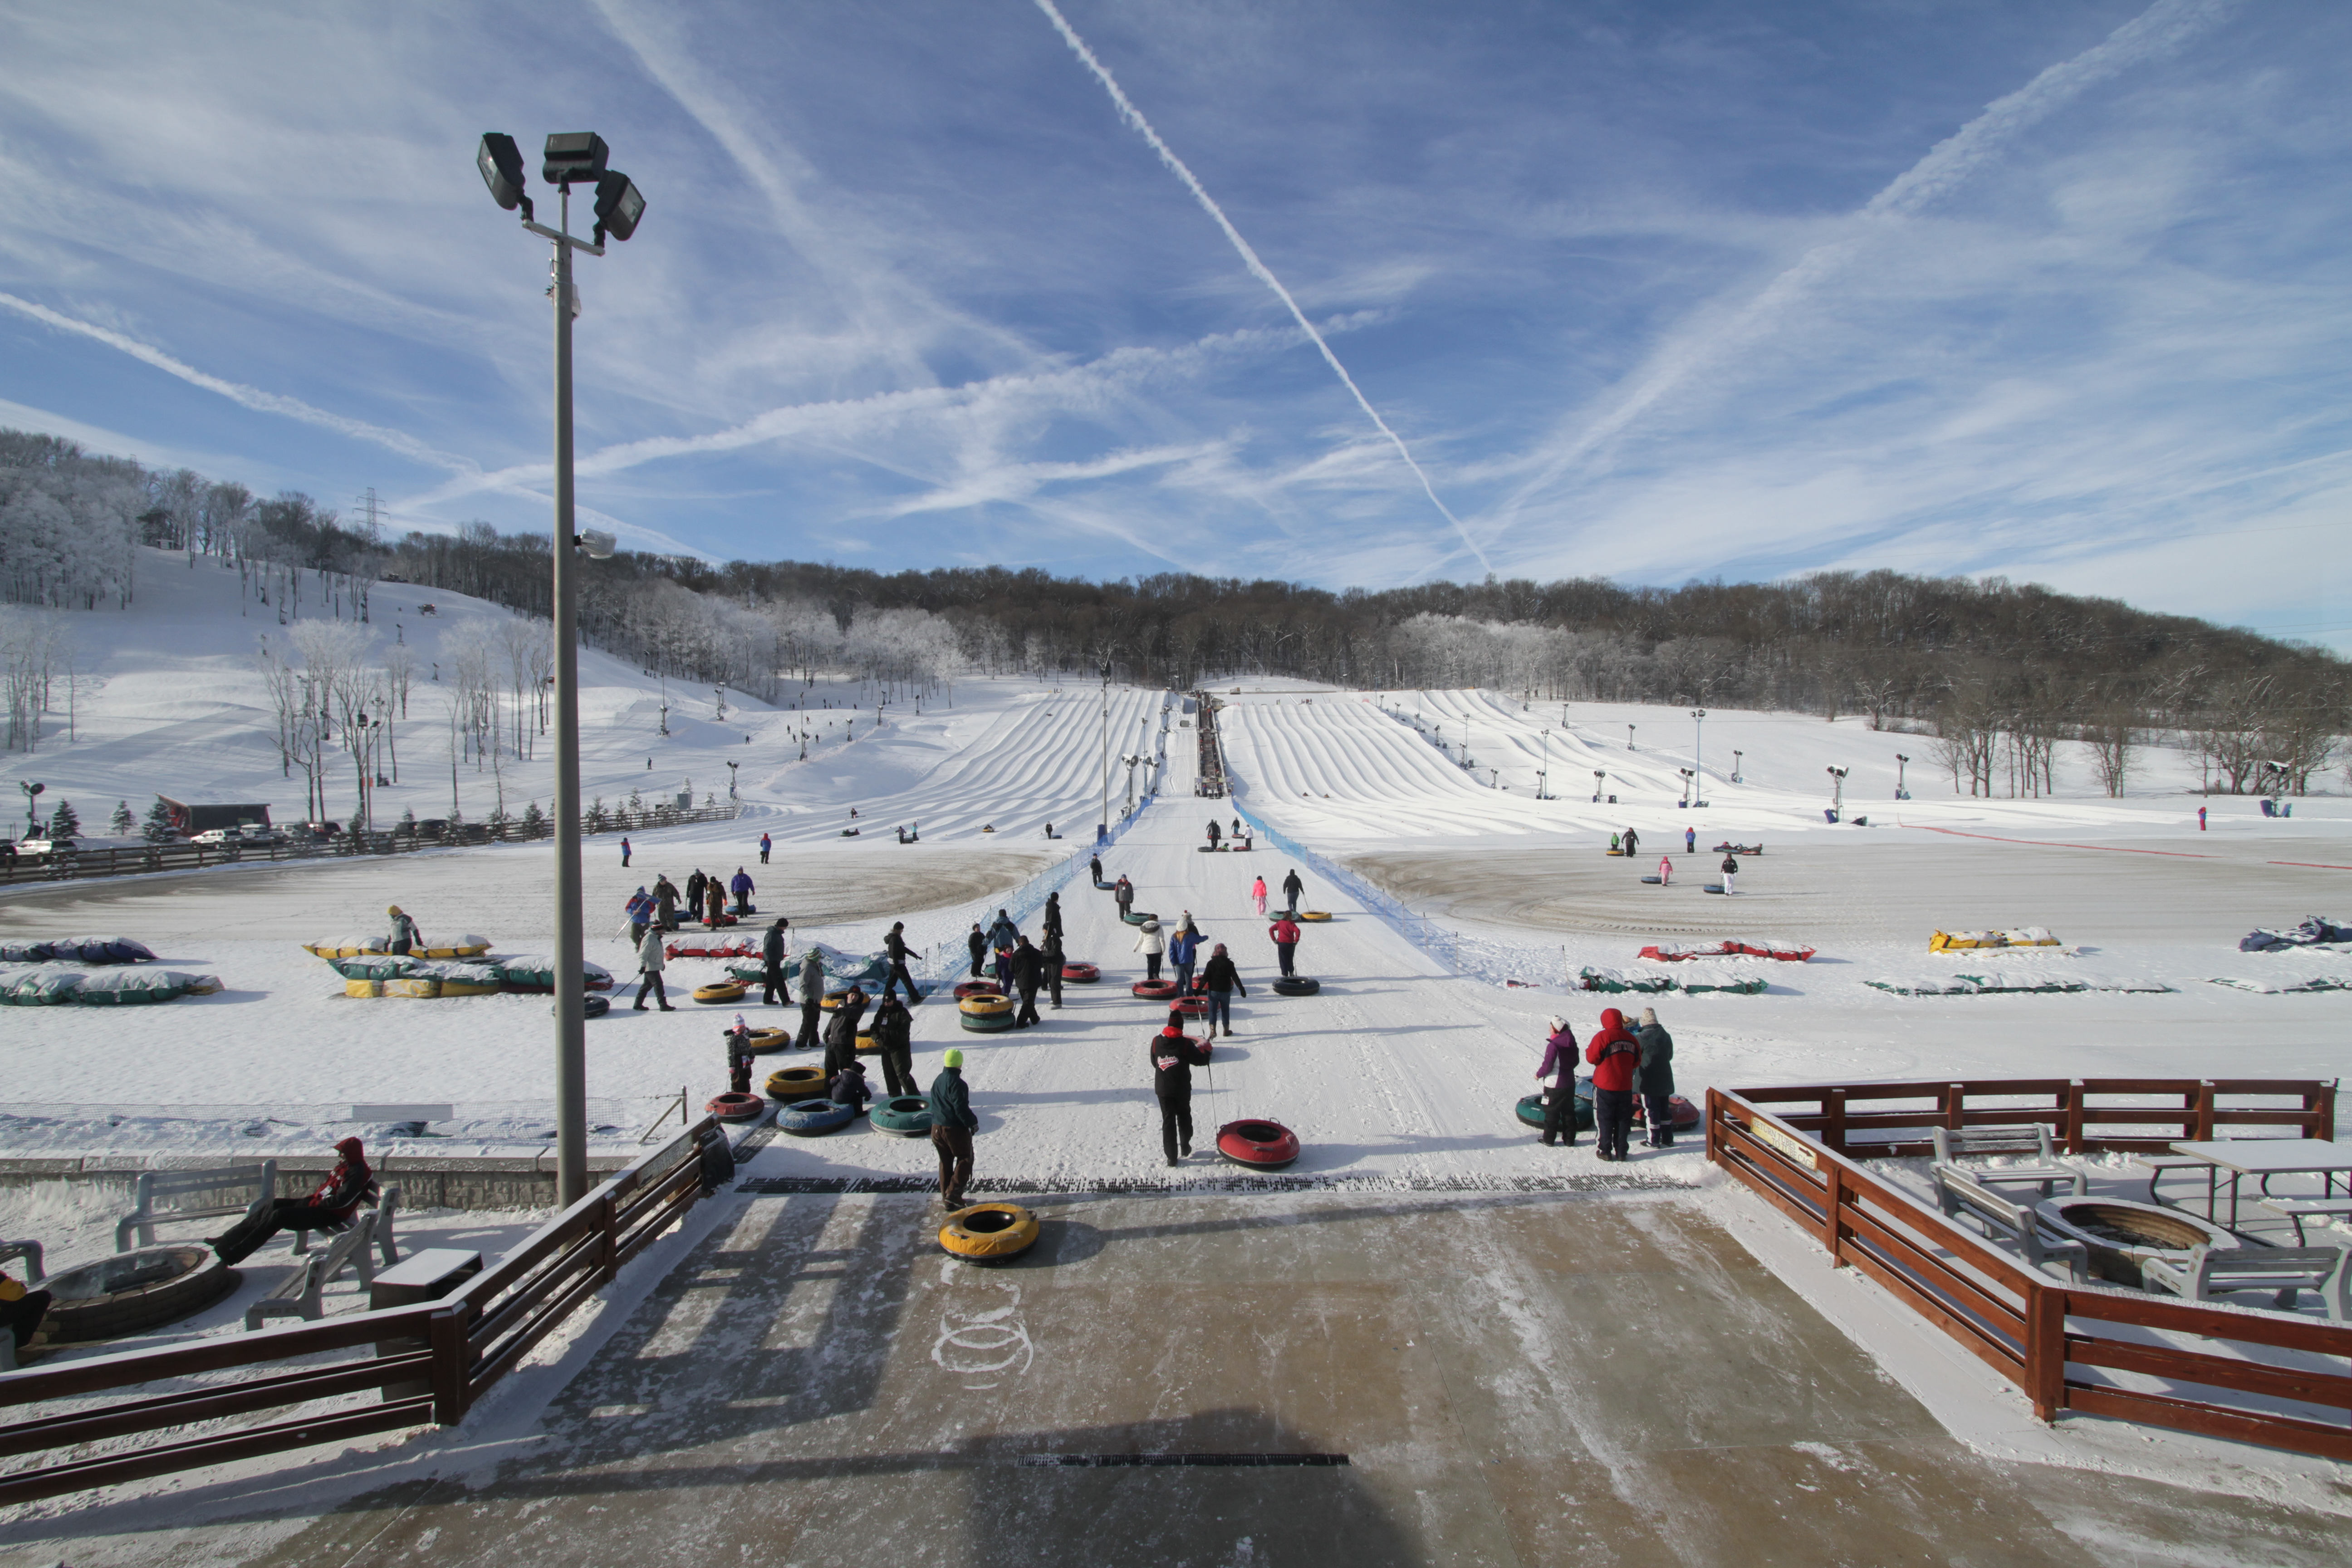 top 10 largest snow tubing parks – snow tubing source